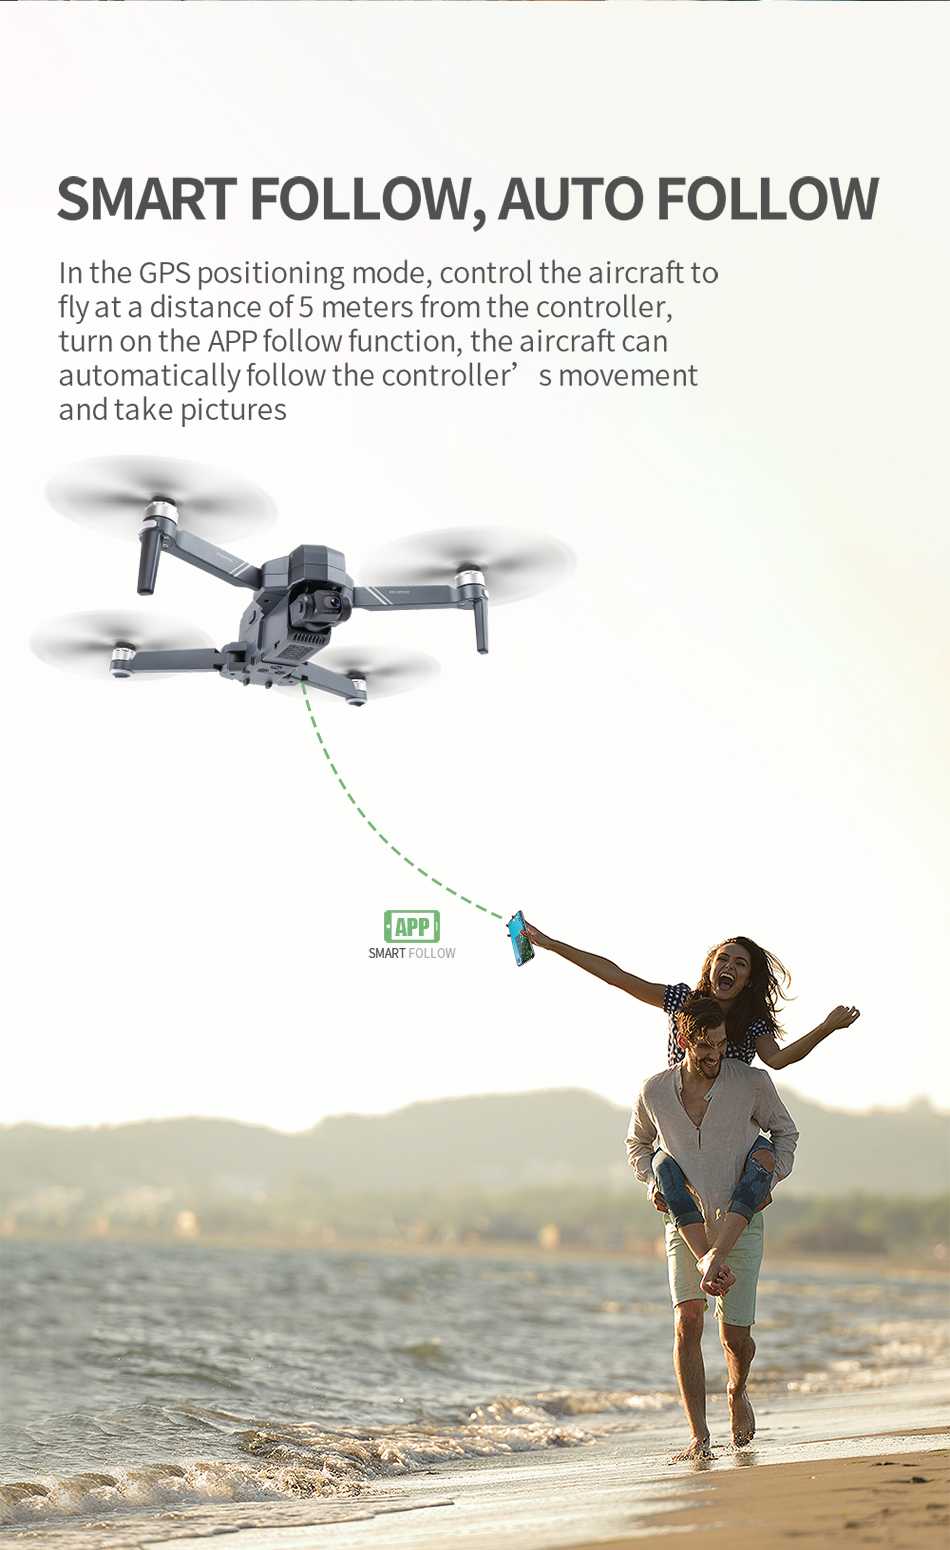 U2b99aa79c3024d02baa679b649b115991 - NEW SJRC F11S 4K PRO Video Camera Drone Professional GPS 2Axis Mechanical EIS Gimbal Quadcopter Brushless Dron Max Flight RC 3KM